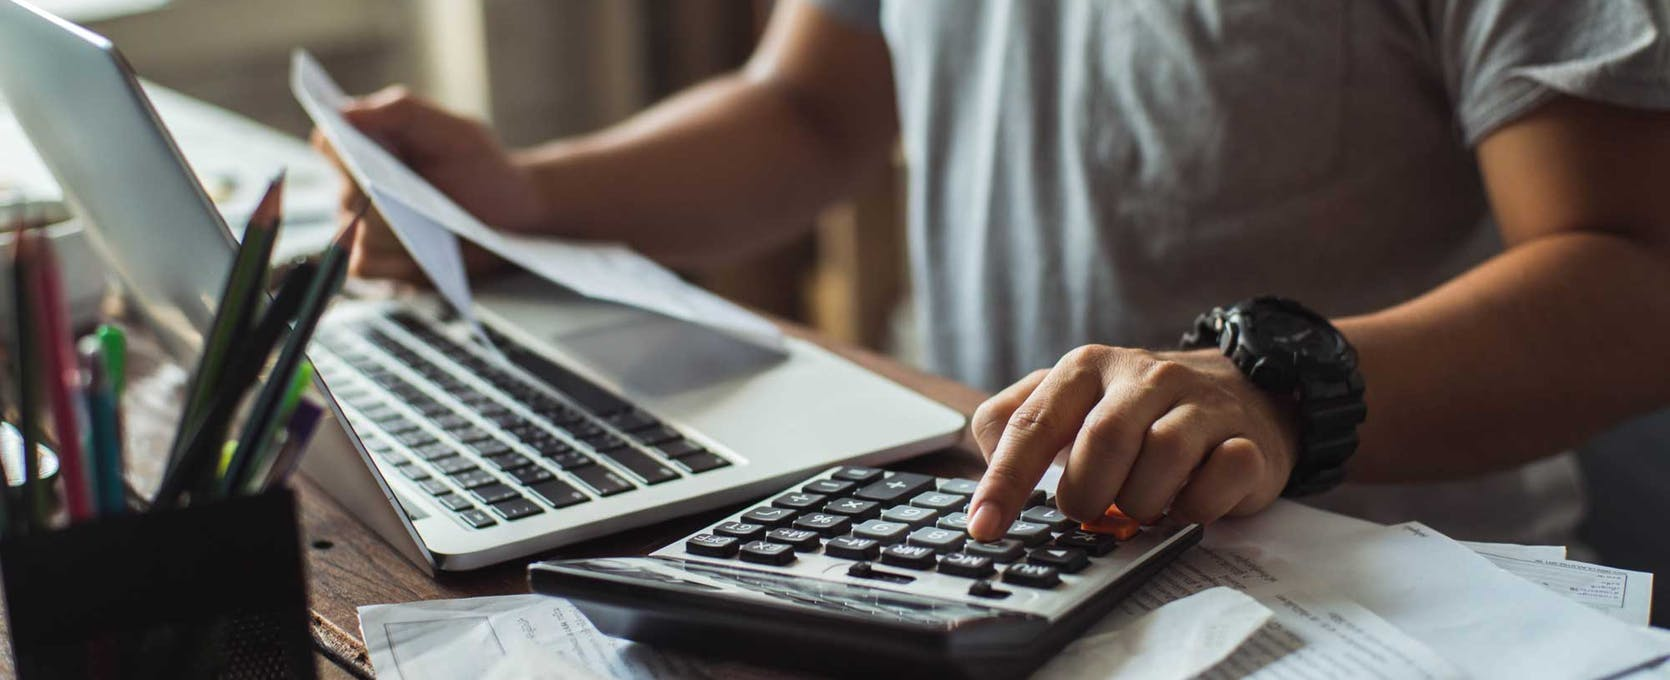 Man reconciles expense accounts with calculator and computer